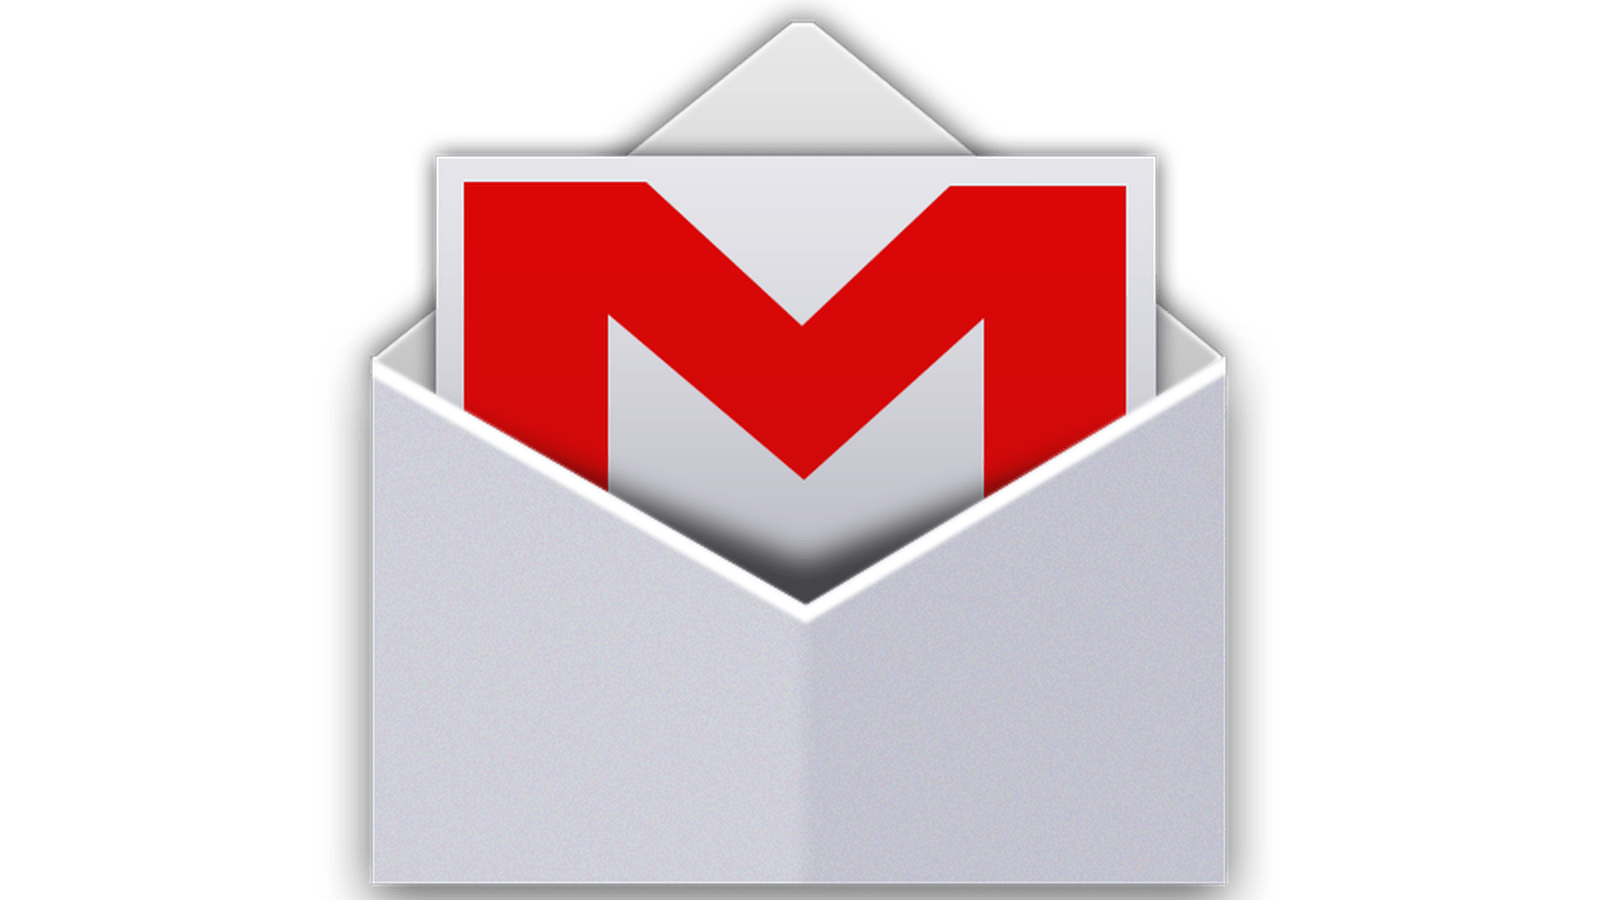 The Verge Wallpaper Iphone X Gmail Will Soon Alert Users About Unencrypted Emails The